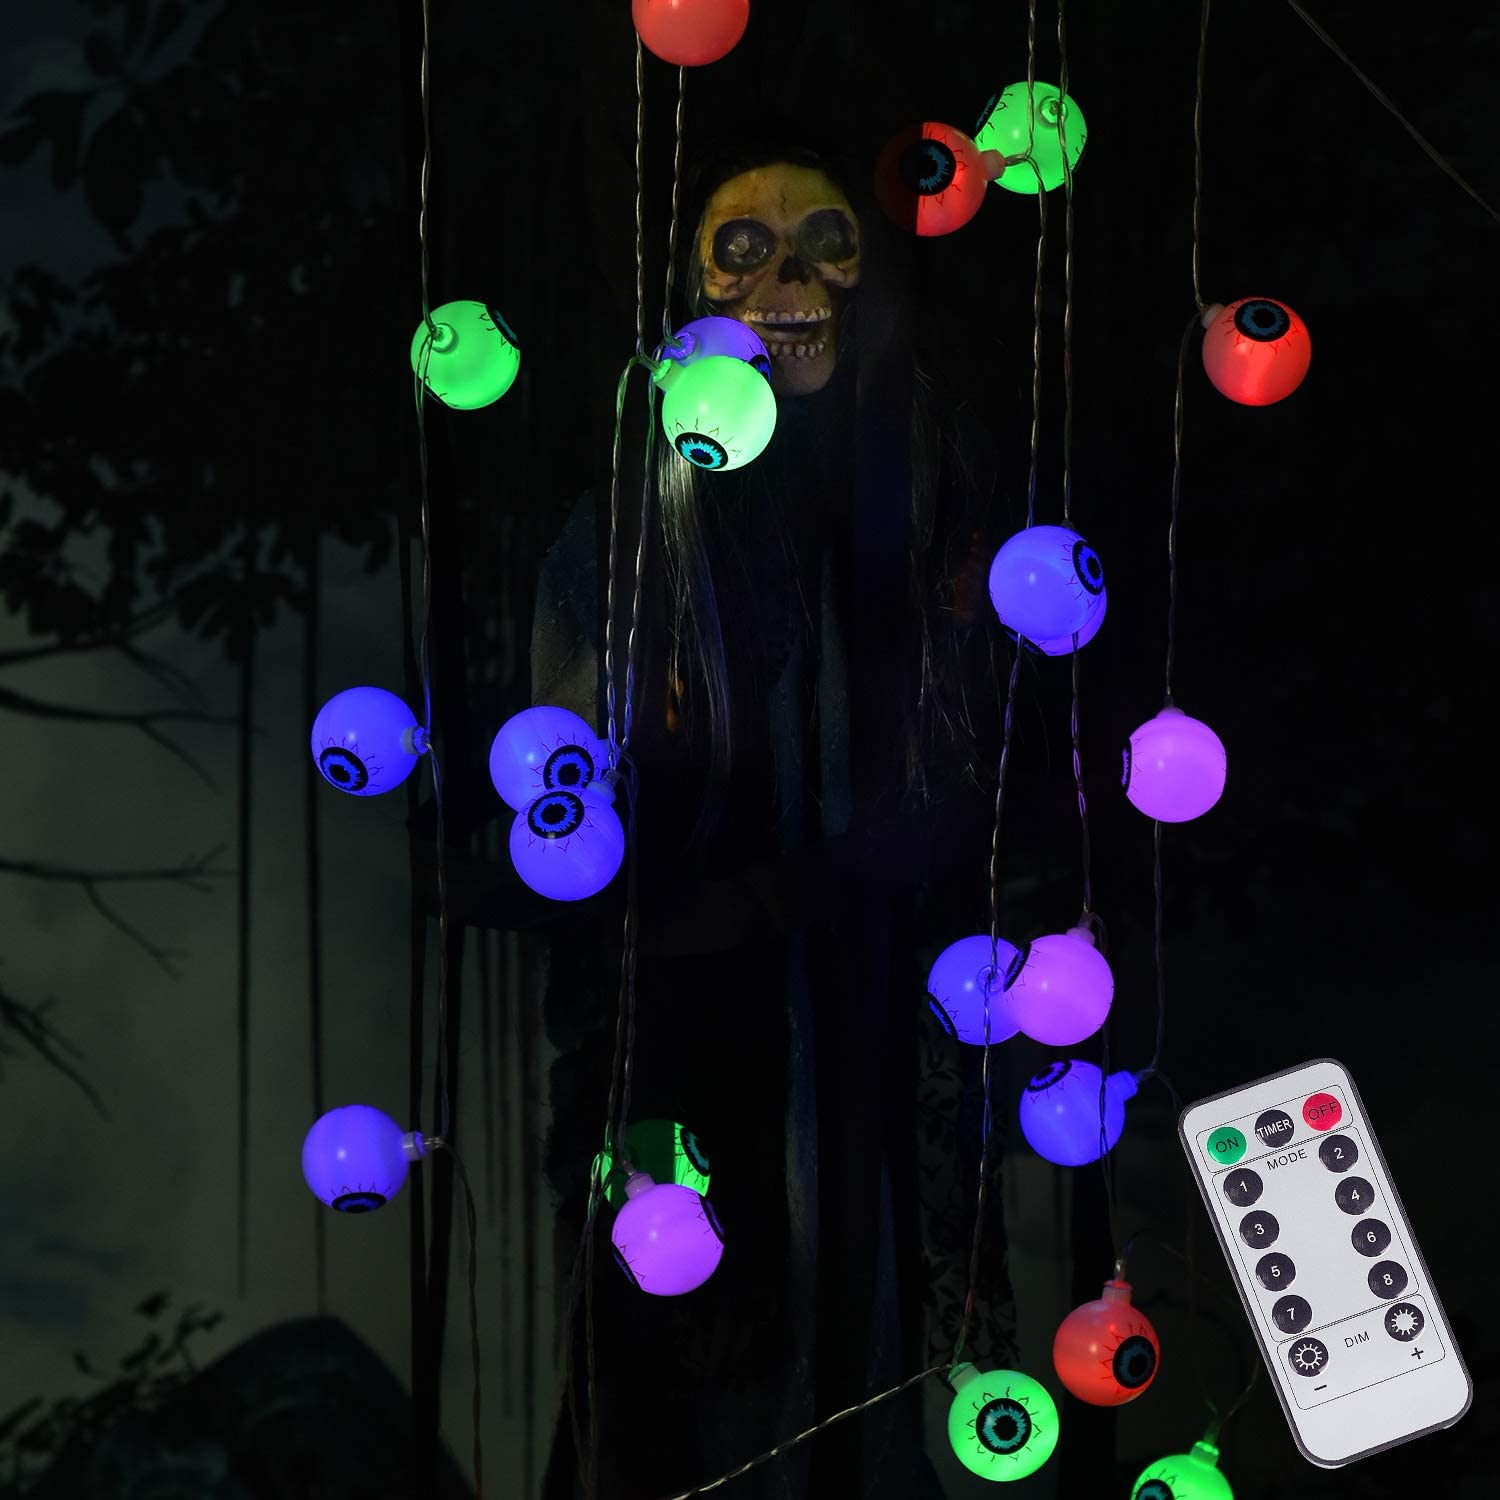 DAYLIGHTIR Halloween Ghost Eyeball String Lights, 16ft 30LED Battery-Powered Remote-Control Perfect Halloween Decoration for Outdoor, Indoor, Garden, Yard, Tree, Party (Multicolor)